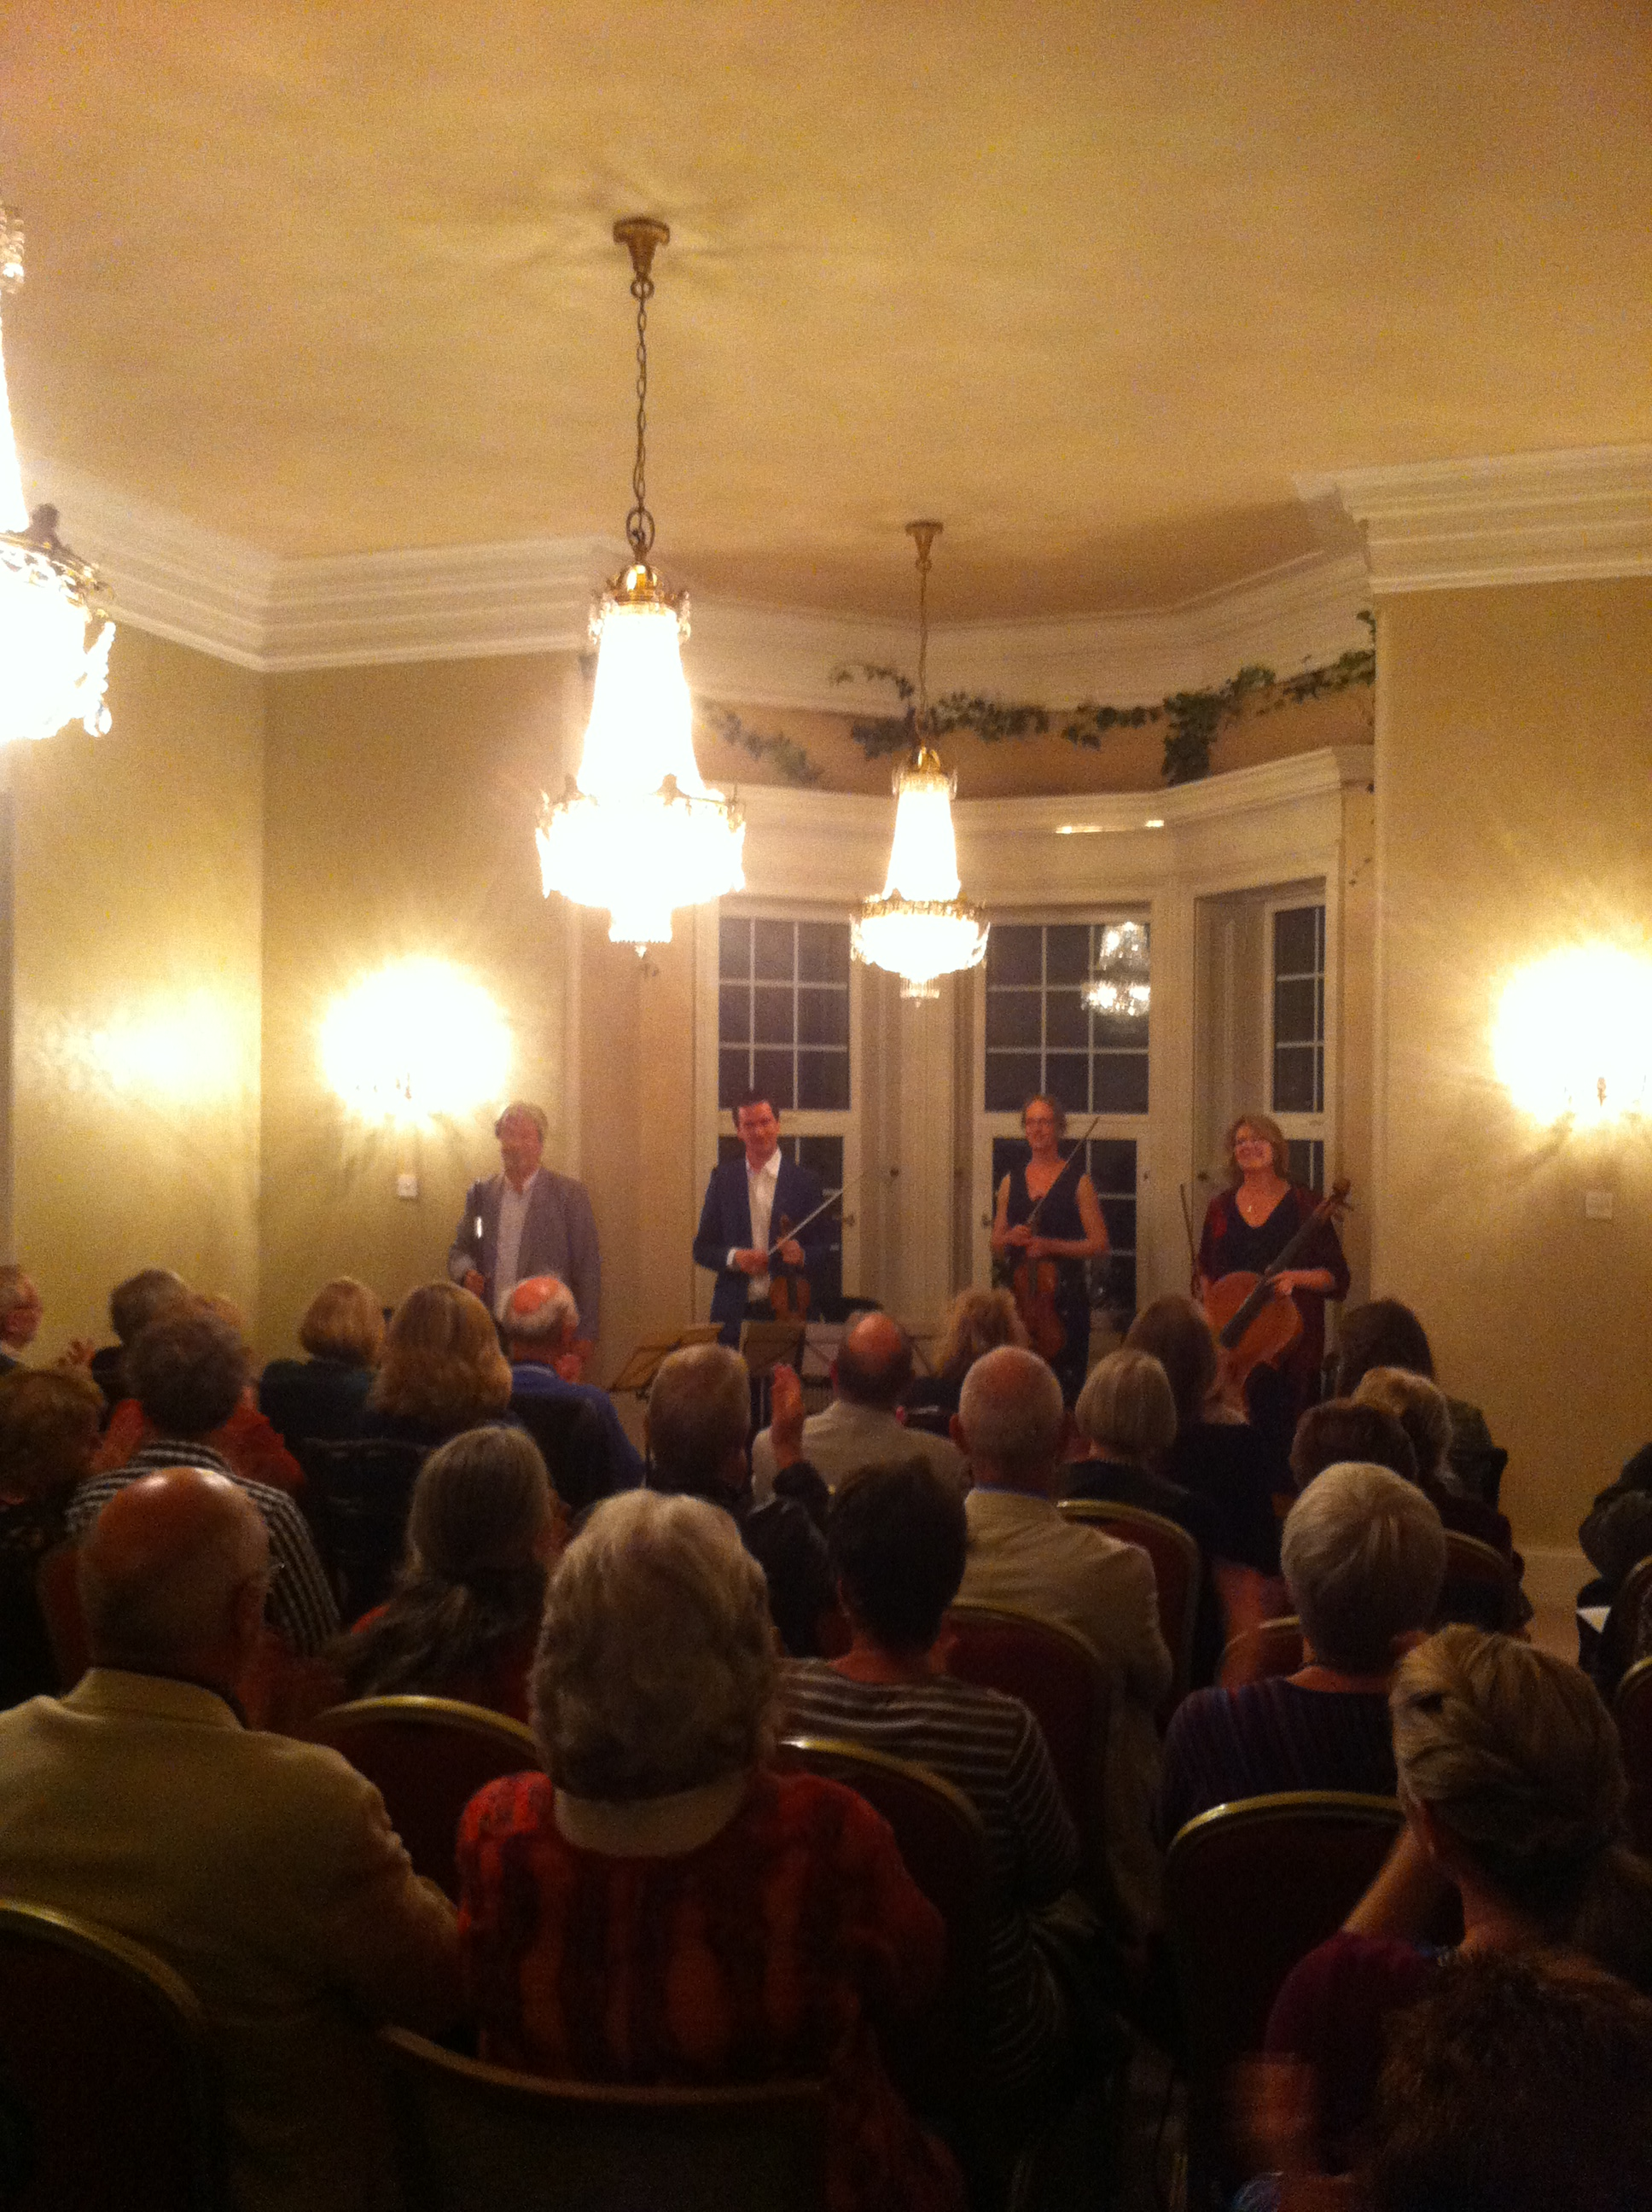 Glanleam House Opening Concert Darragh Morgan, William Dowdall, Nancy Johnson, Miriam Roycroft